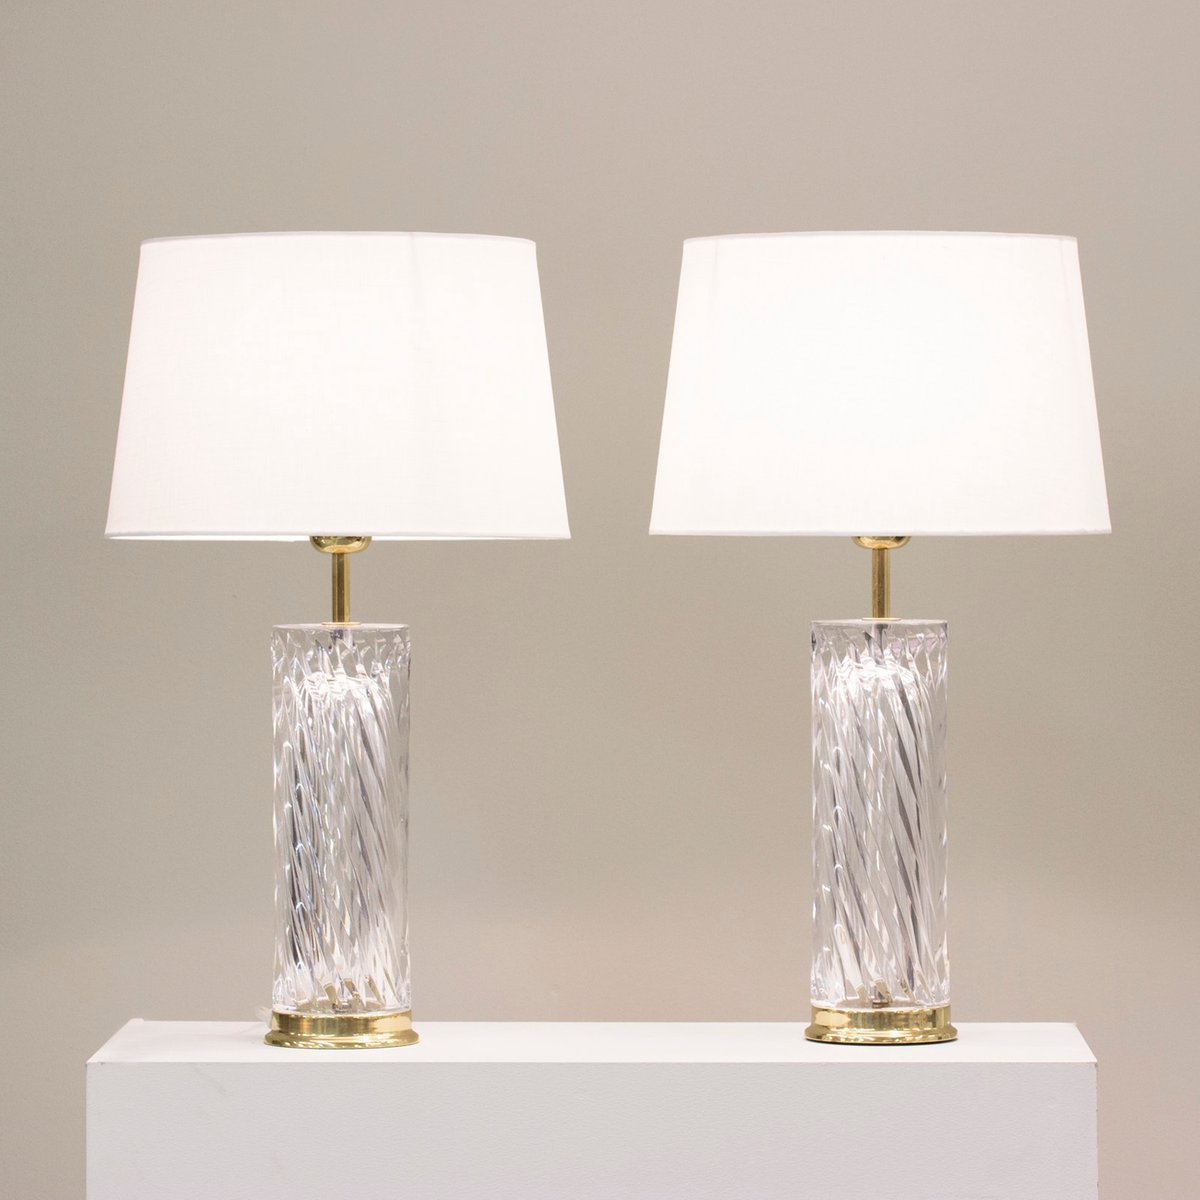 Crystal Table Lamps By Olle Alberius For Orrefors 1970s